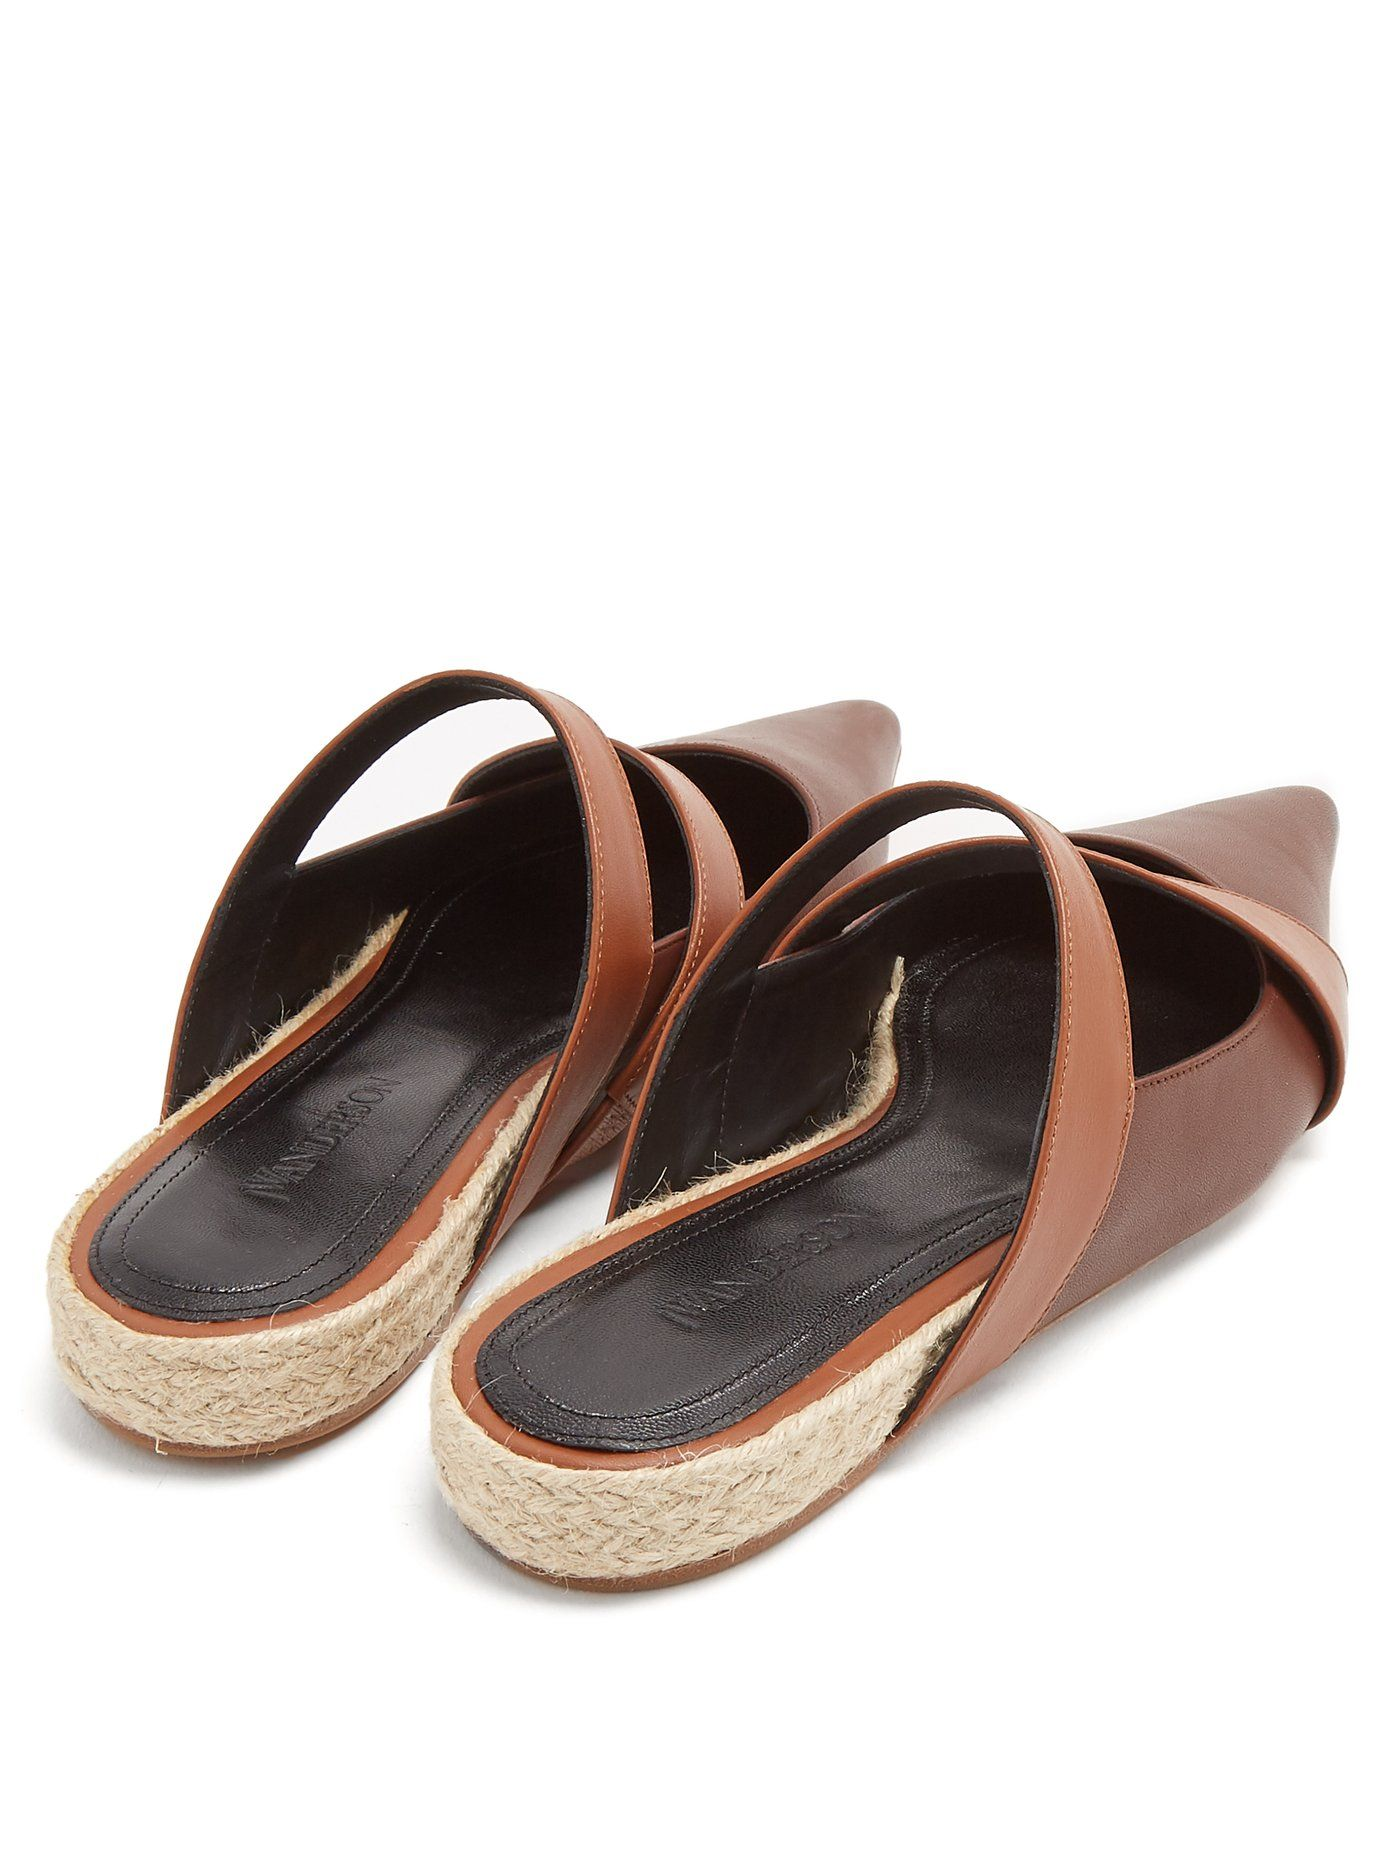 J.W.Anderson Point-toe leather backless ballet flats Cheap Brand New Unisex Cheap With Mastercard Where Can I Order Discount Original nIUFXUV